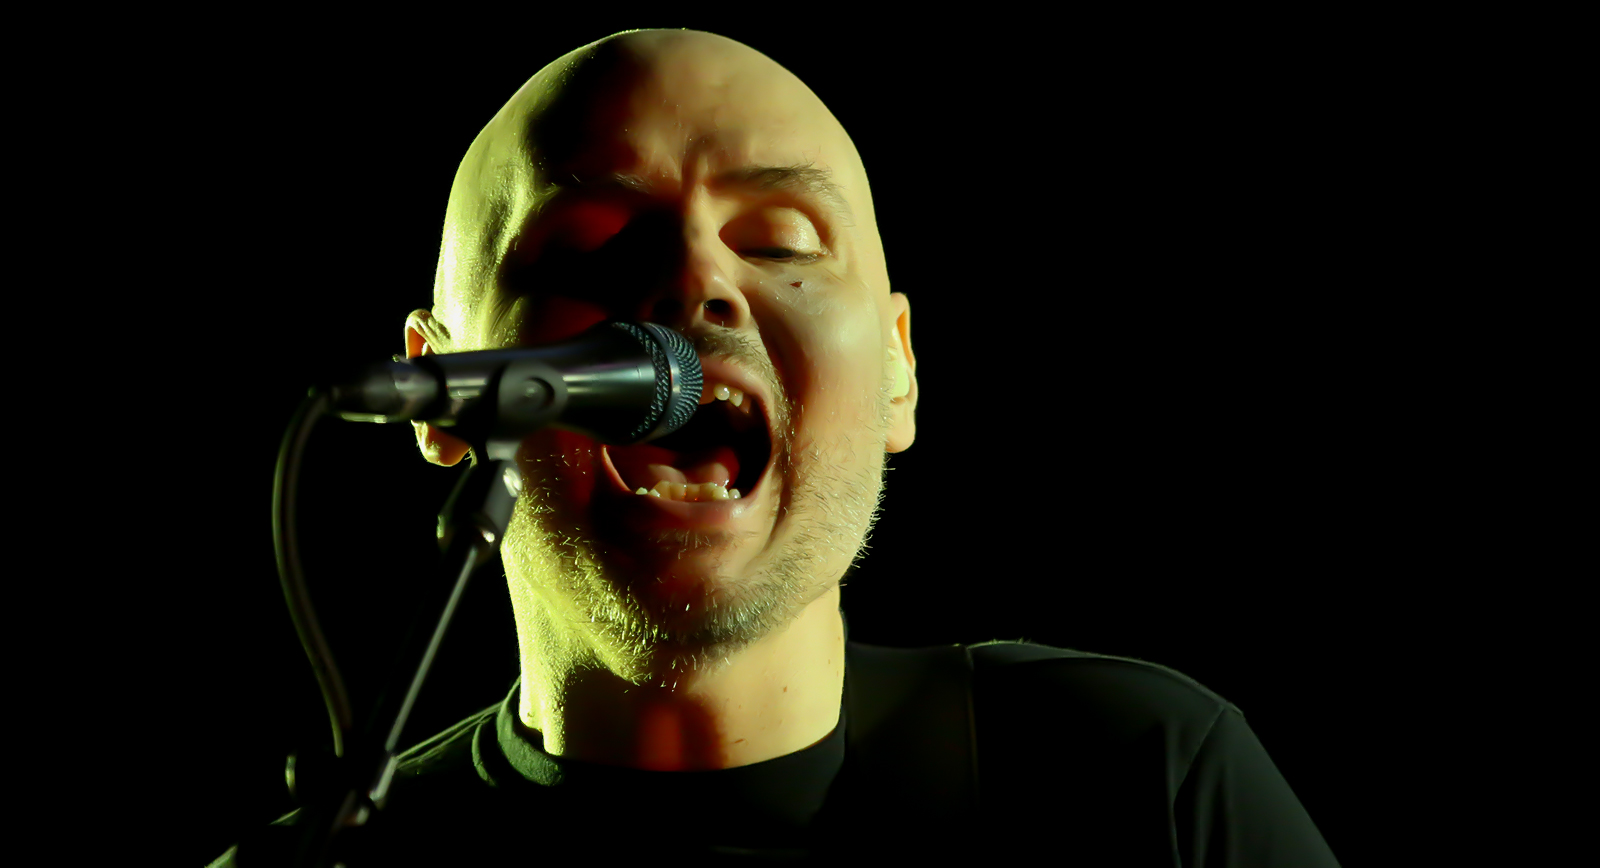 The-Smashing-Pumpkins-2016-Tour-Dates-In-Plainsong-Concert-Cities-North-America-Tickets-Details-FI